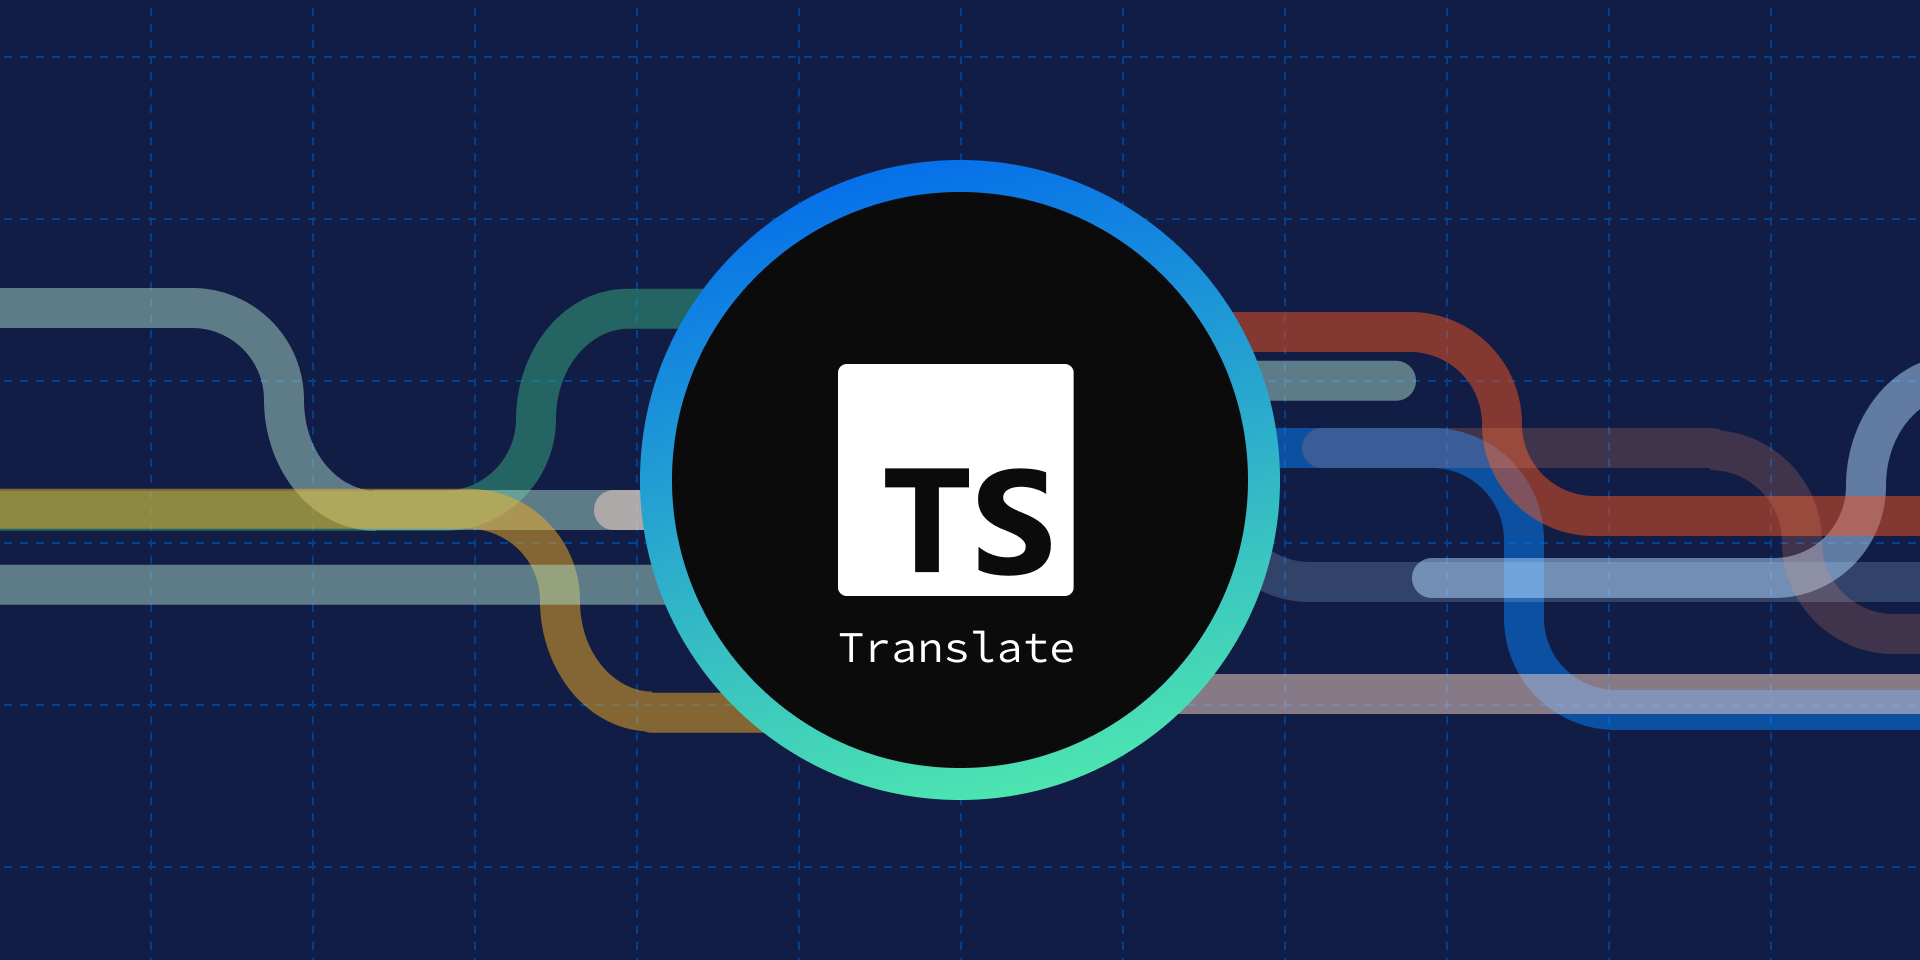 Forest Admin is now fully compatible with TypeScript